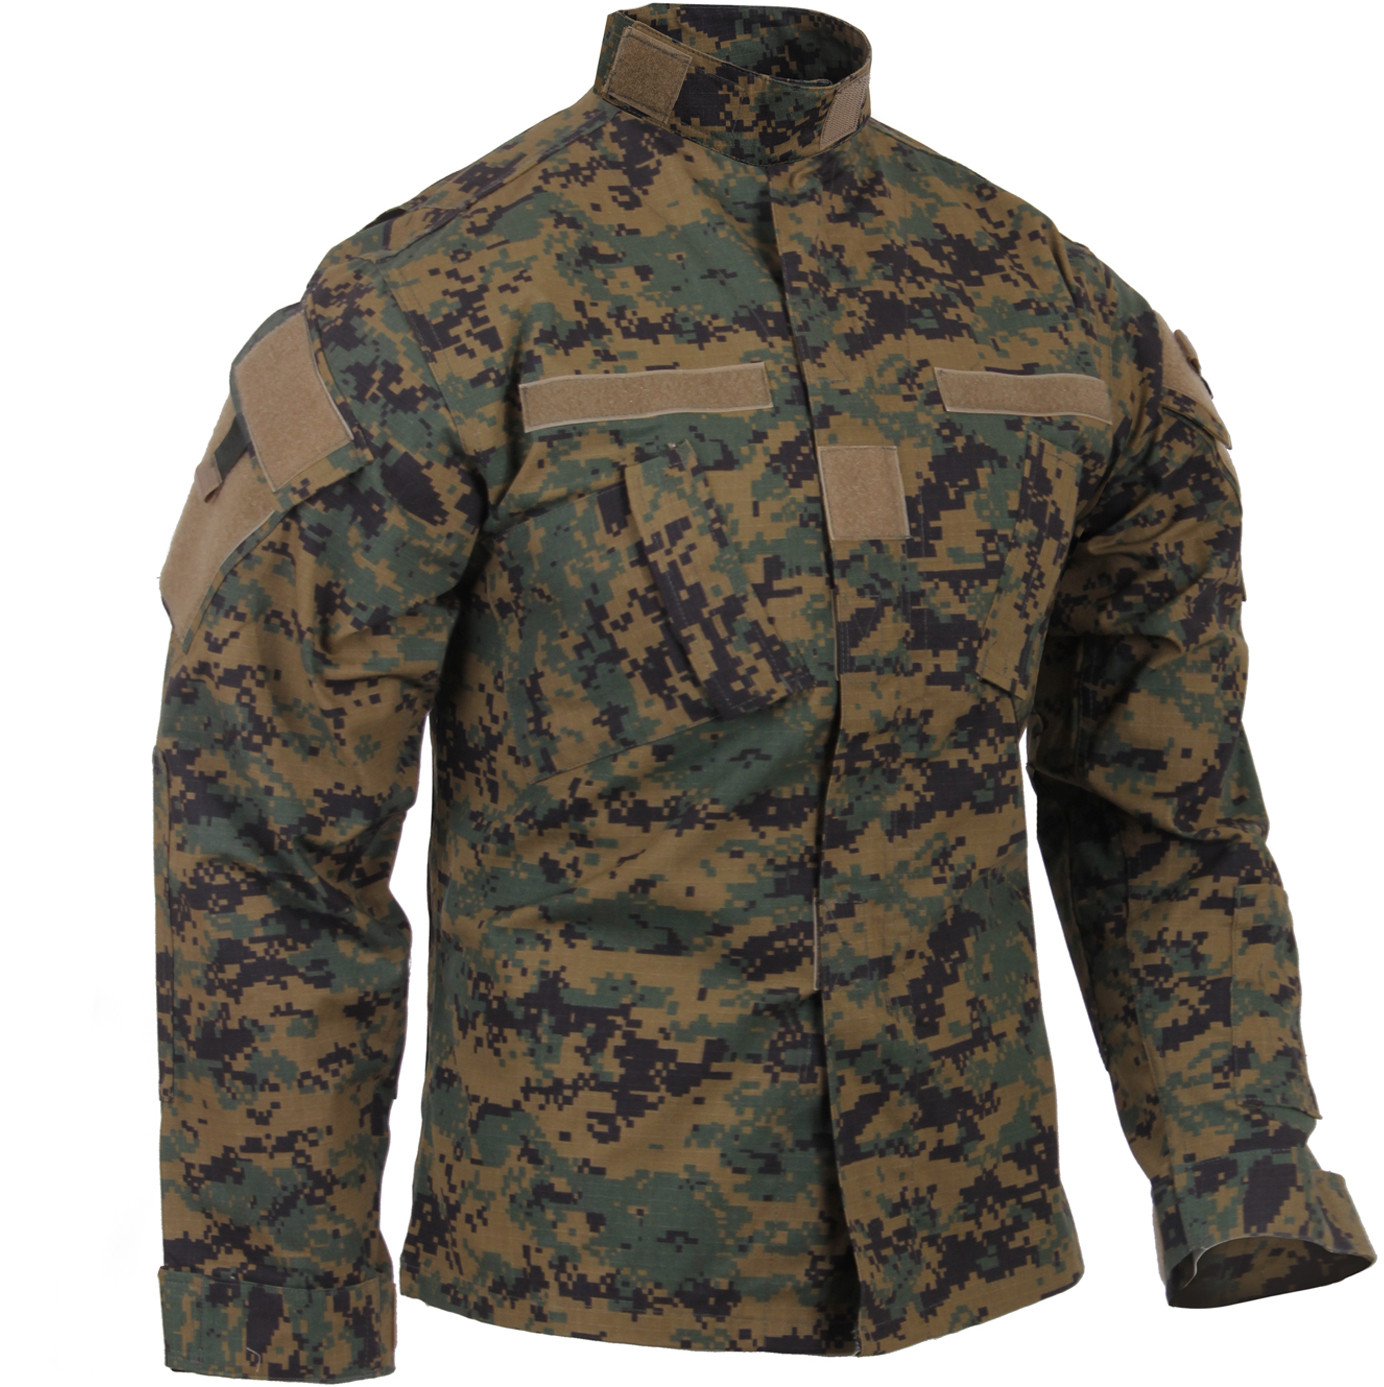 Woodland Digital Camouflage Combat Ready Tactical Military Uniform Shirt bf70e49300a